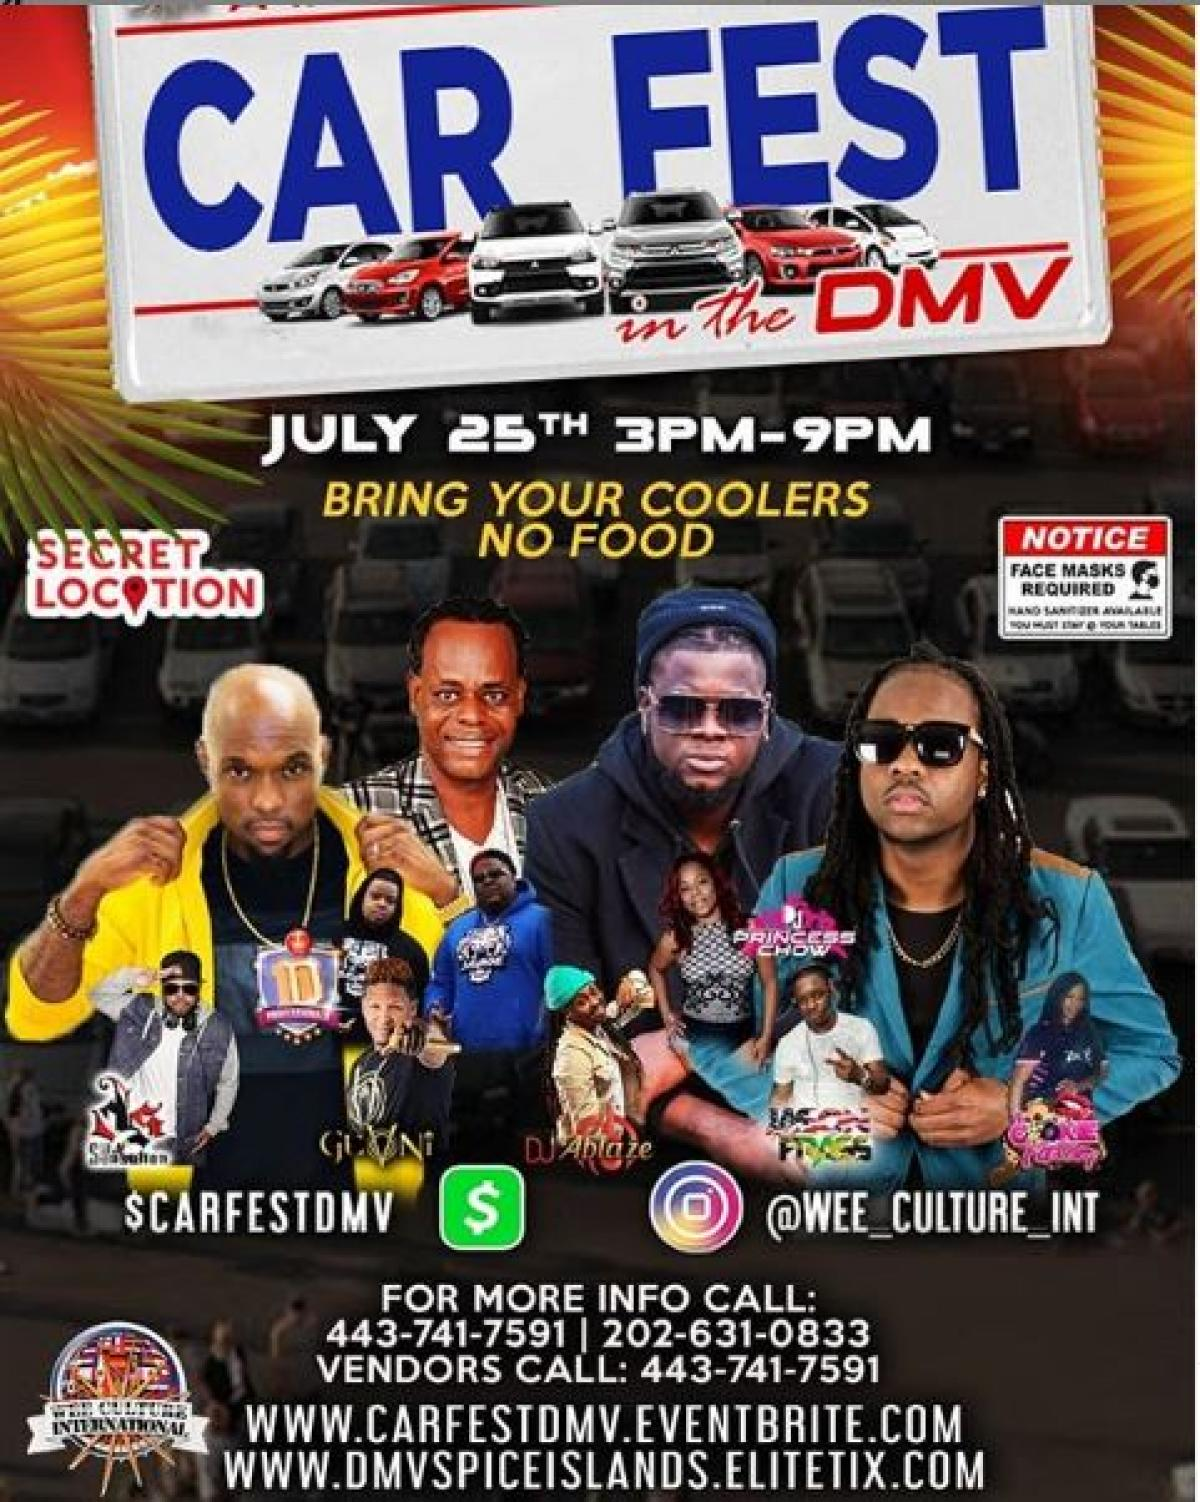 Car Fest In The DMV flyer or graphic.